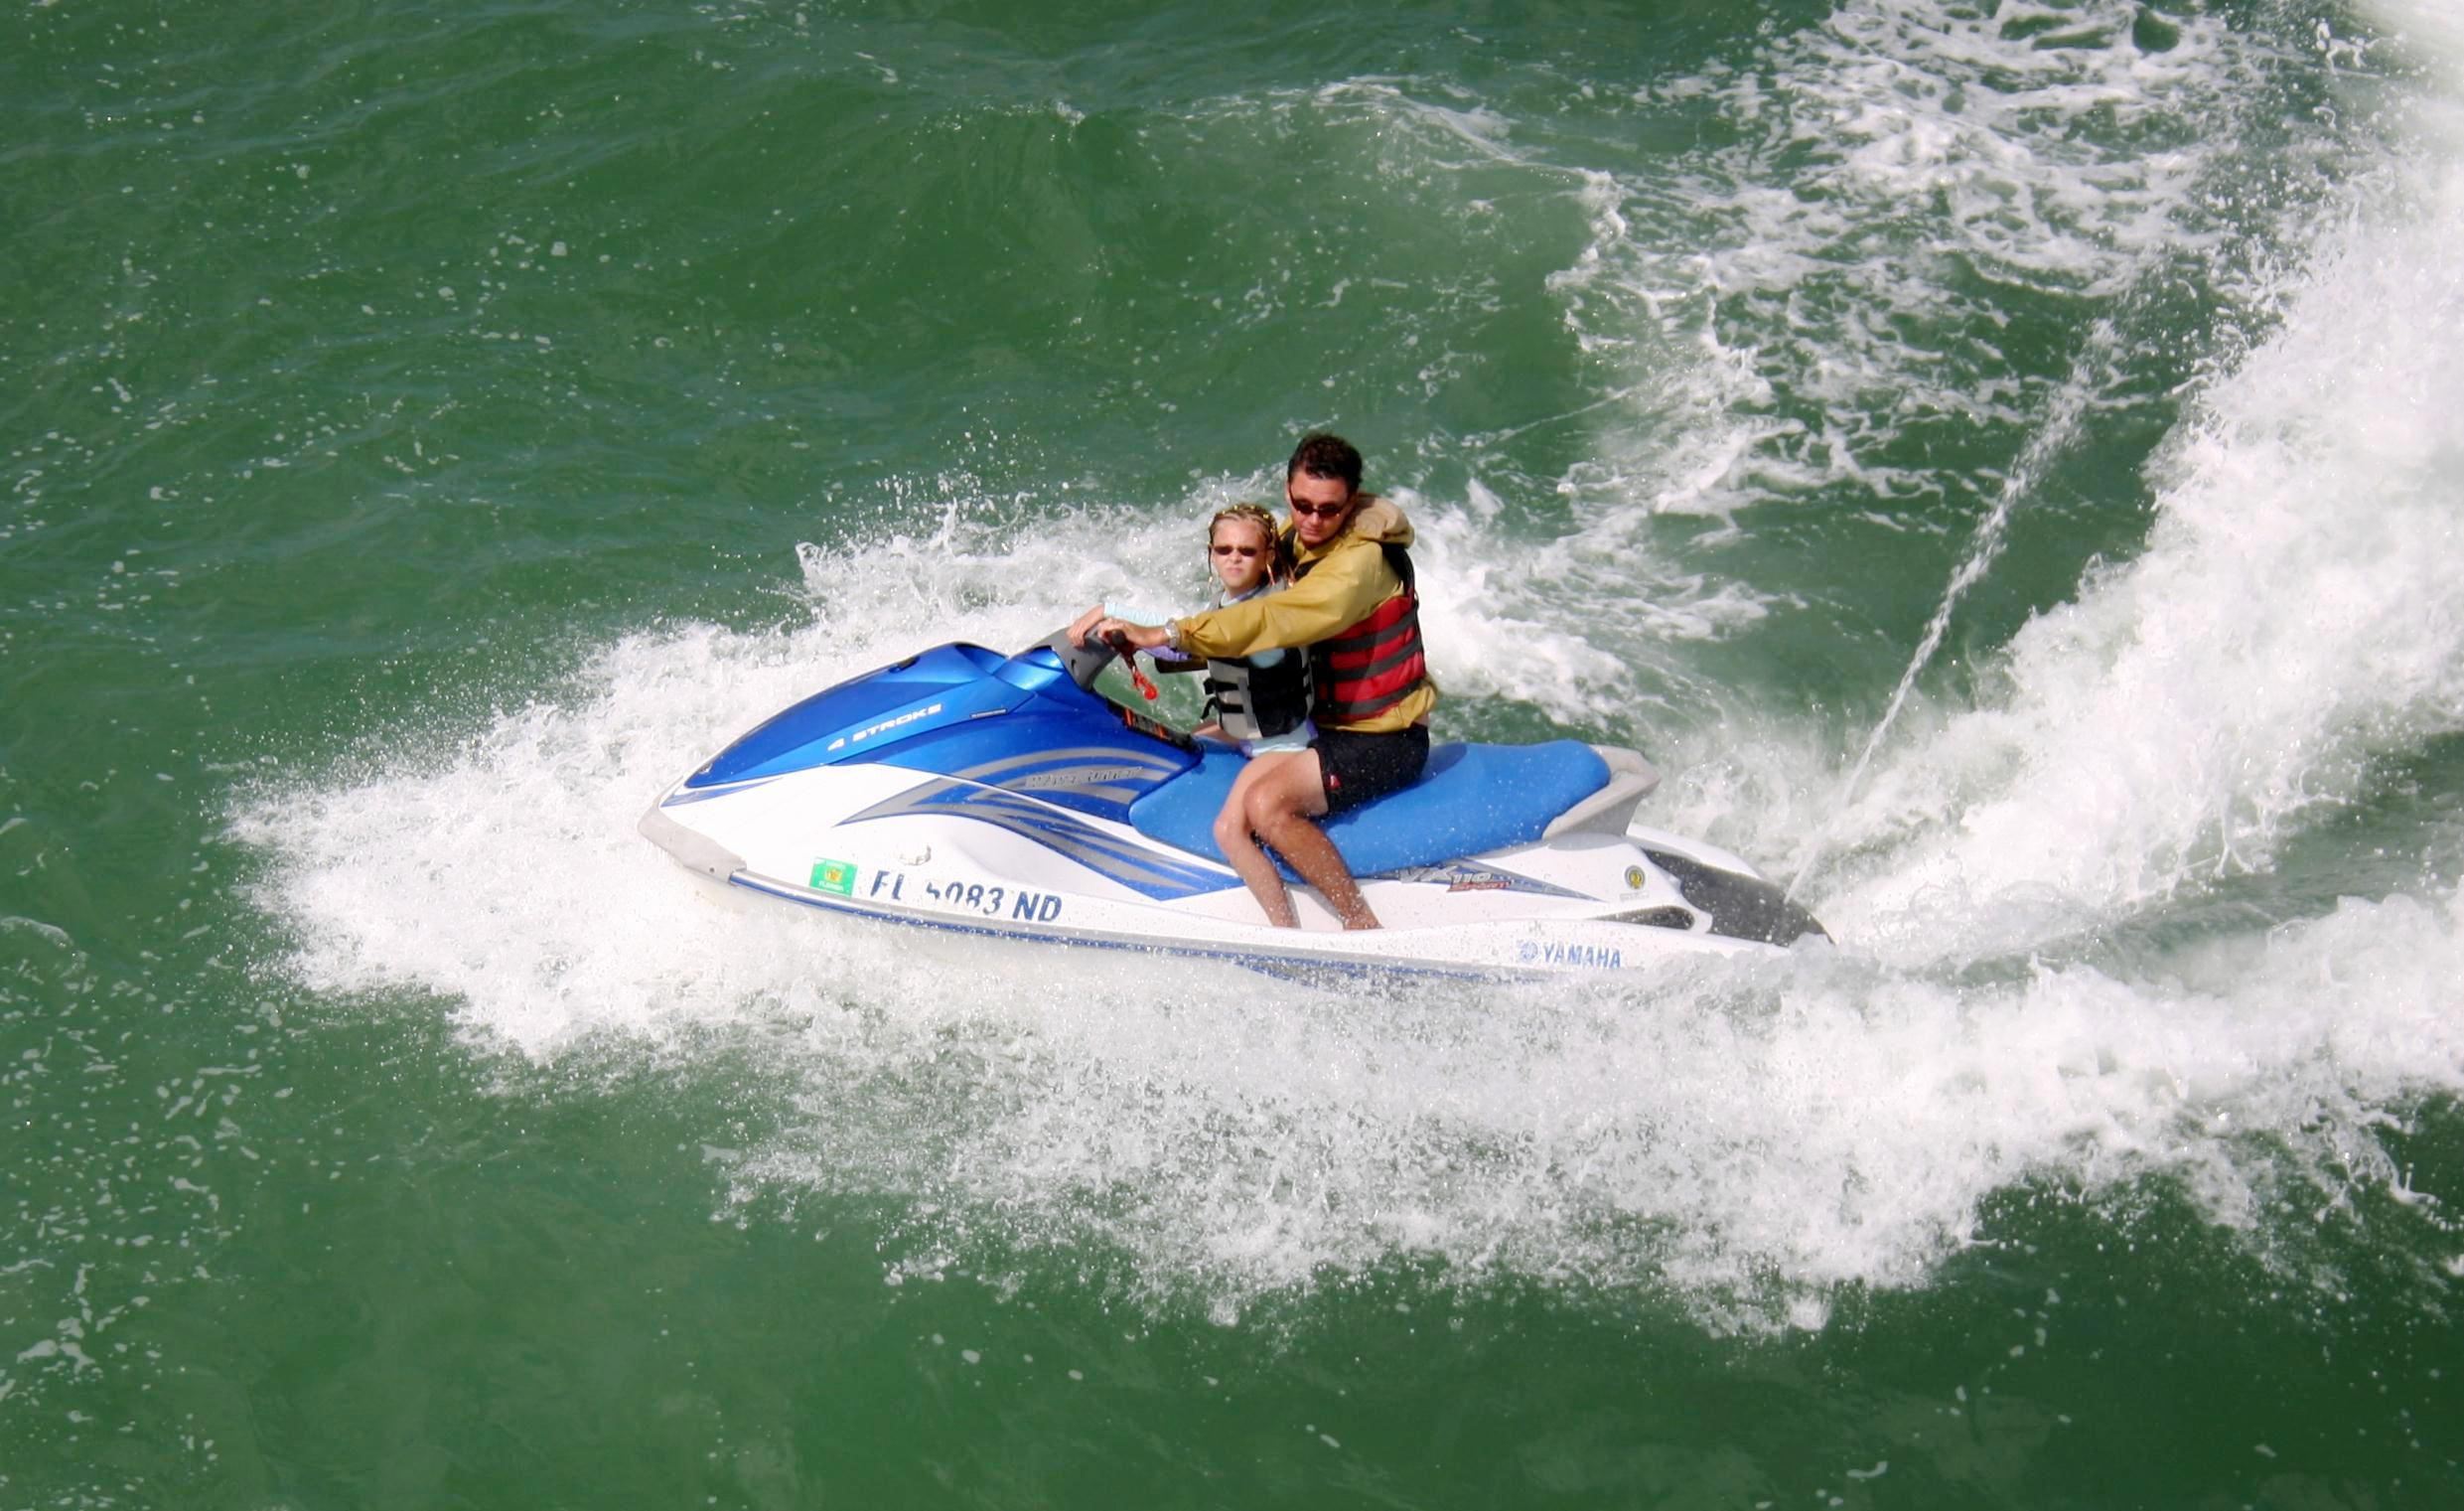 Kevin&Bailey on waverunner.jpg